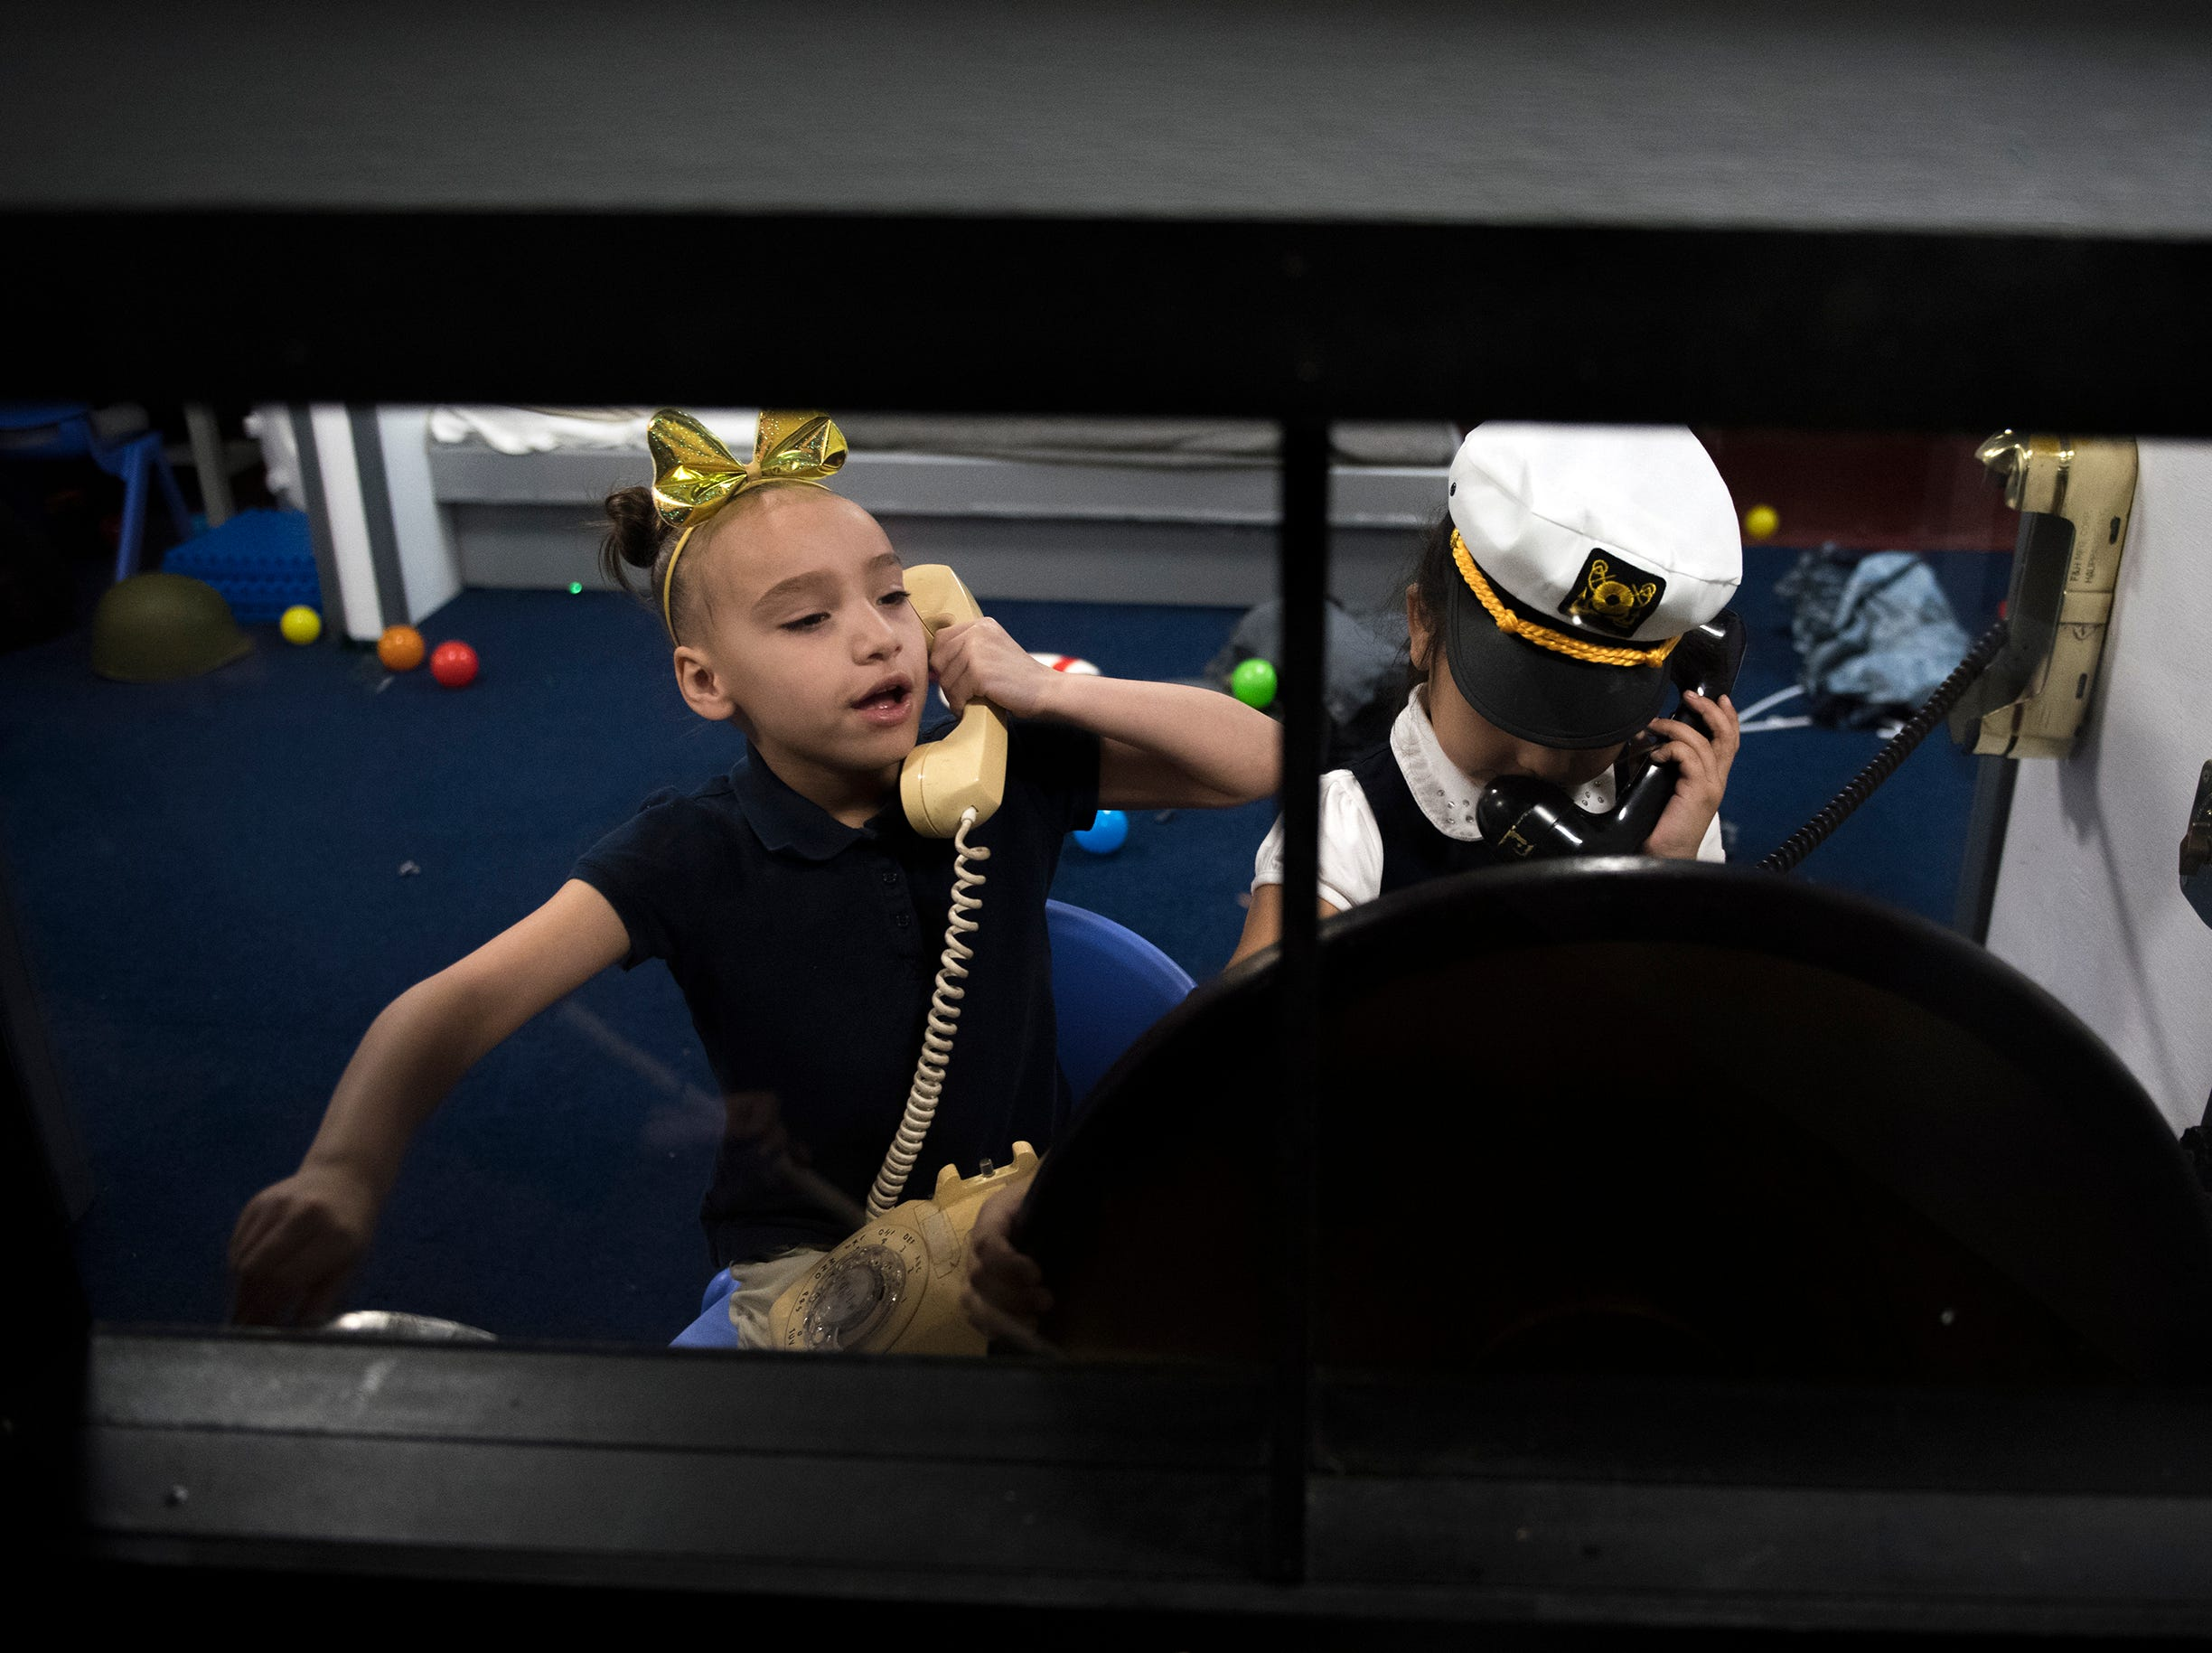 Pre-schoolers Yolyani Gilmore, left, and Areli Cortes play at Jason's Kids Kompartment Thursday, March 21, 2019 aboard the USS New Jersey battleship in Camden, N.J.